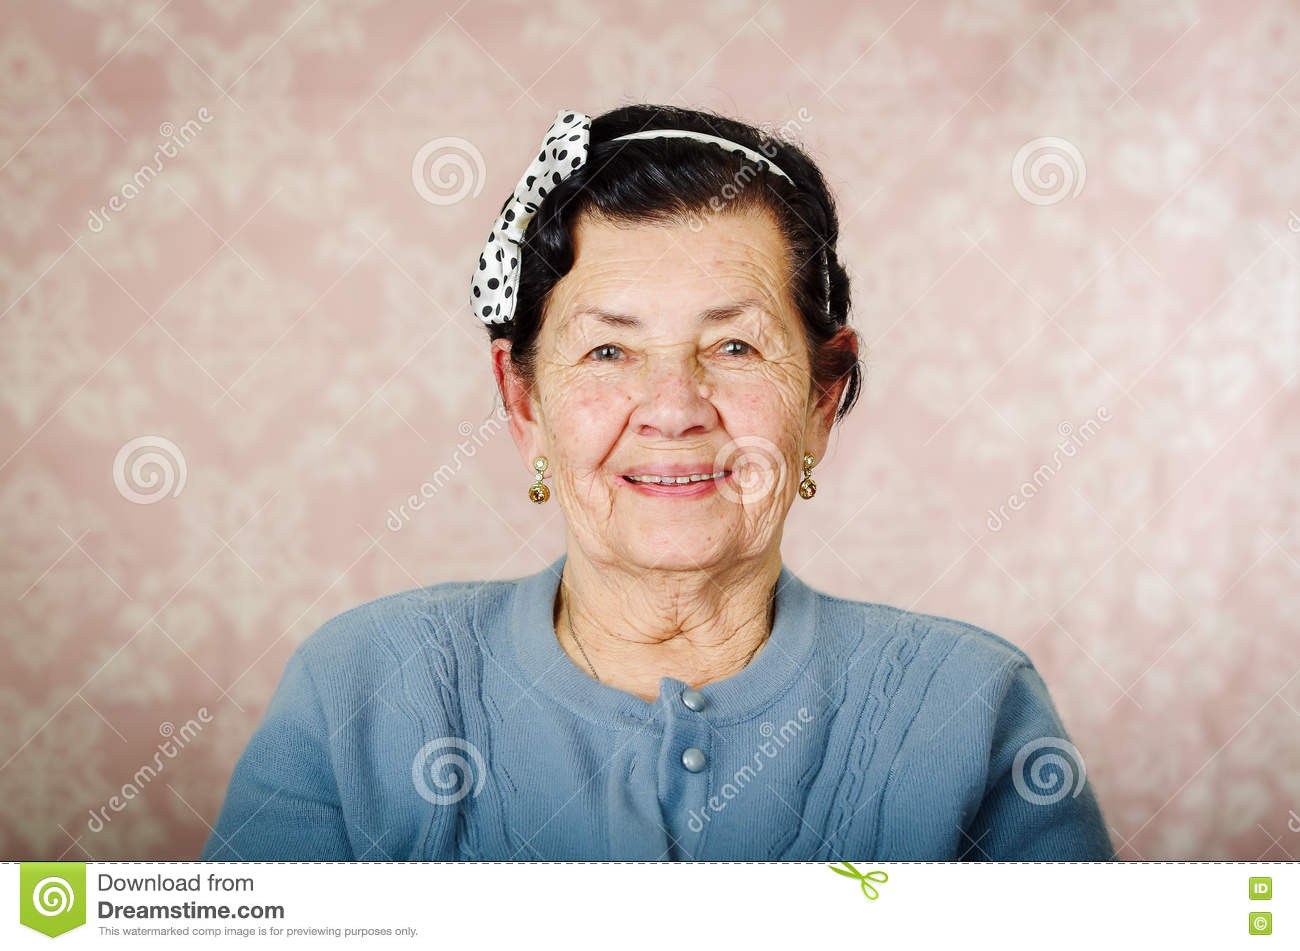 Older cute hispanic woman wearing blue sweater and polka dot bowtie on head smiling happily in front of pink wallpaper